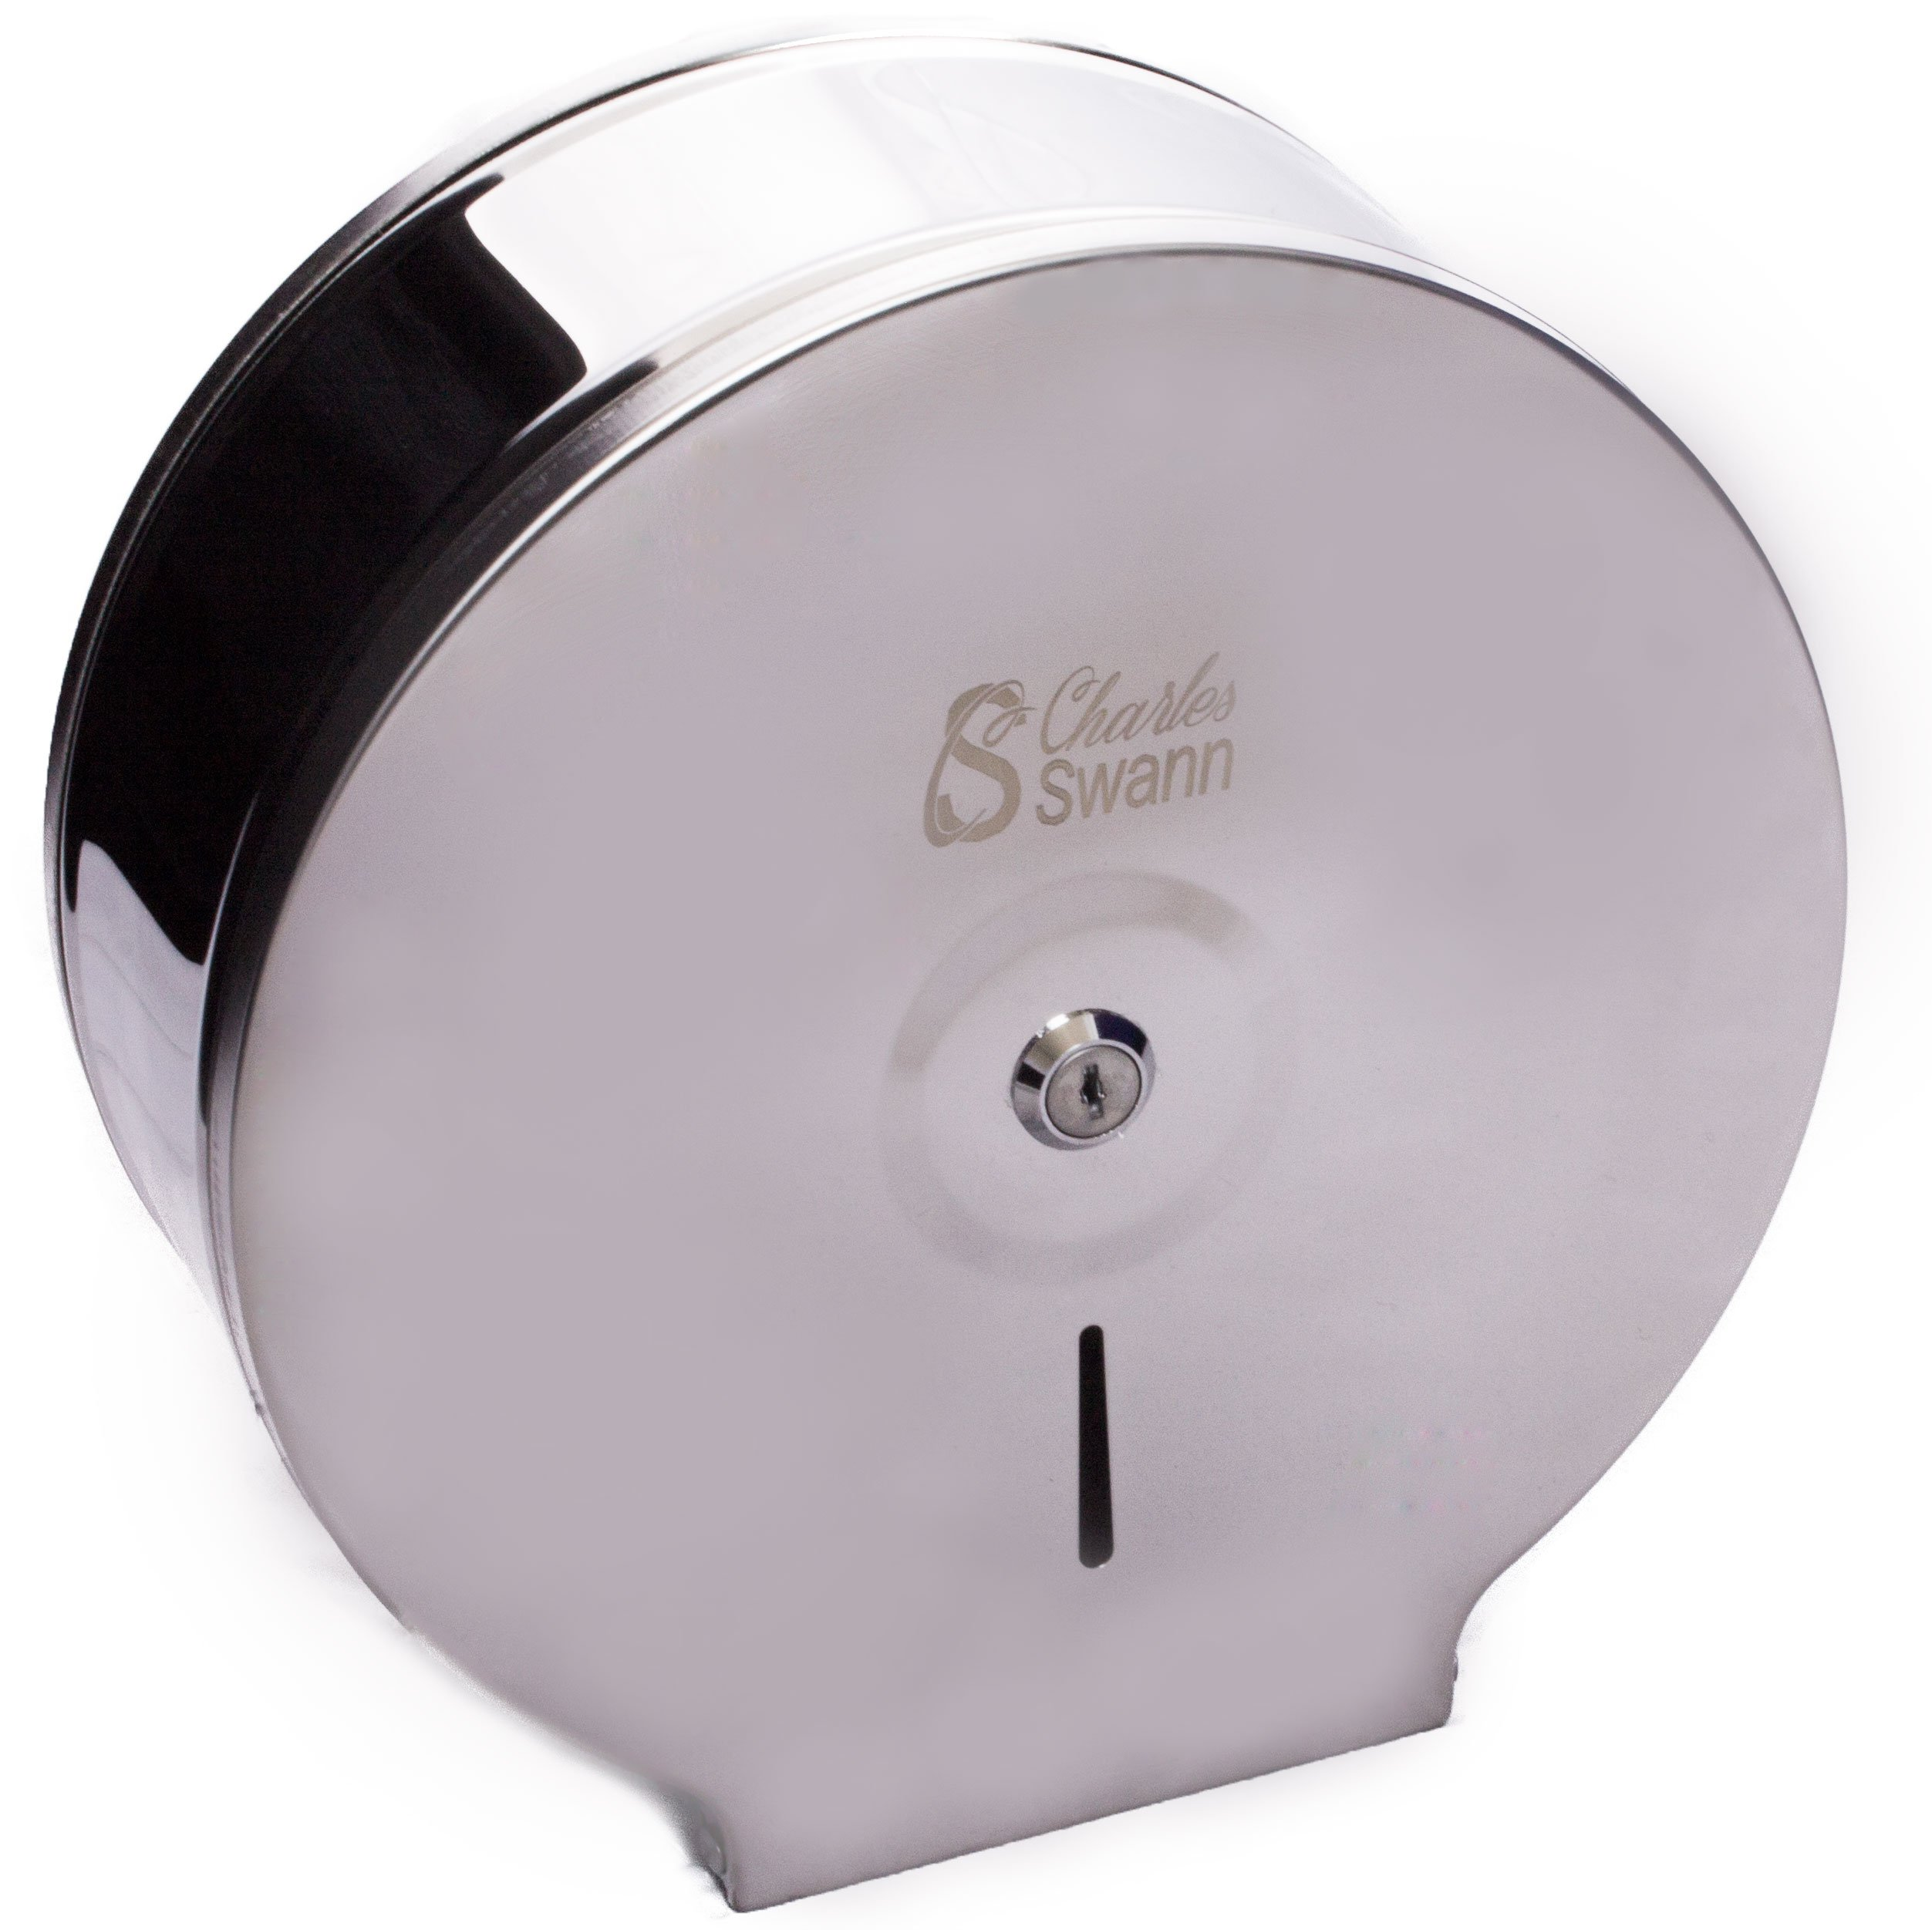 Charles Swann 9'' Commercial Stainless Steel Toilet Paper Dispenser with Forever Guarantee | Premium & Durable Jumbo Chrome Wall Mount Tissue Holder for Professional Bathroom | Hardware For Single Roll